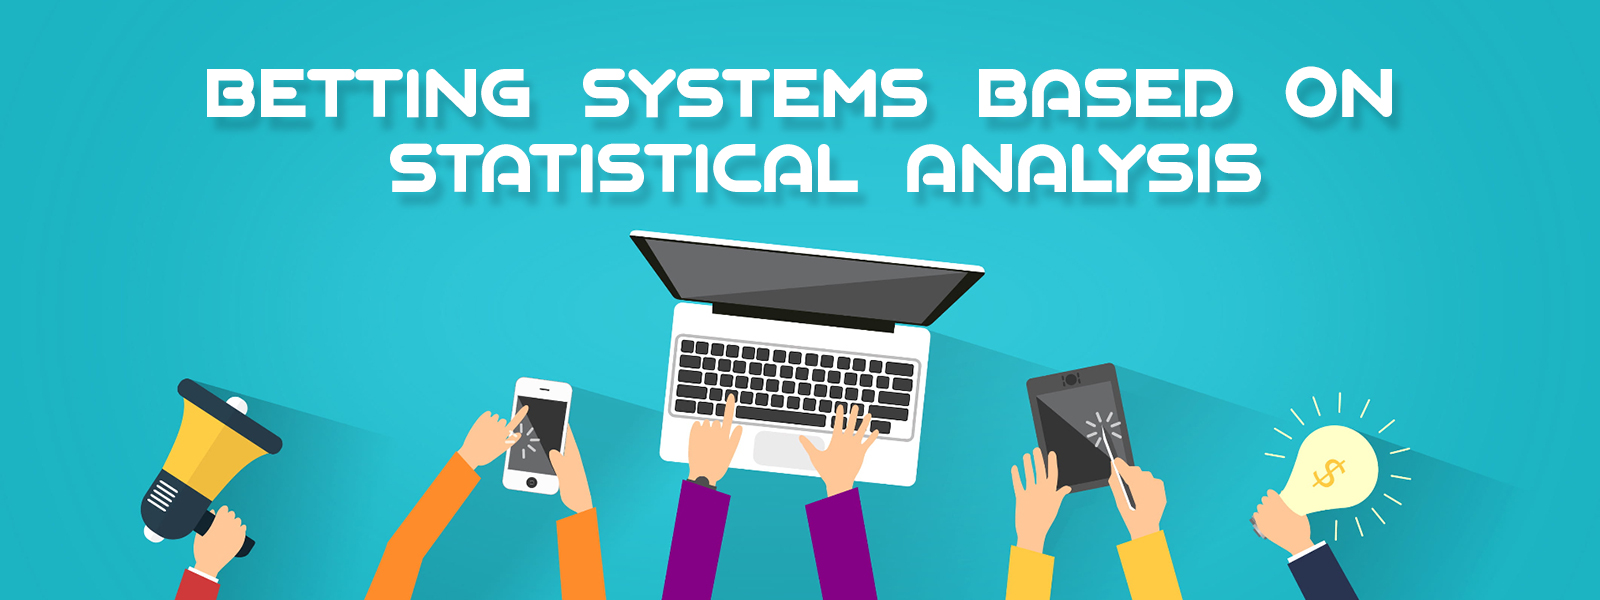 SoccerTipsters Blog | Betting Systems Based On Statistical Analysis